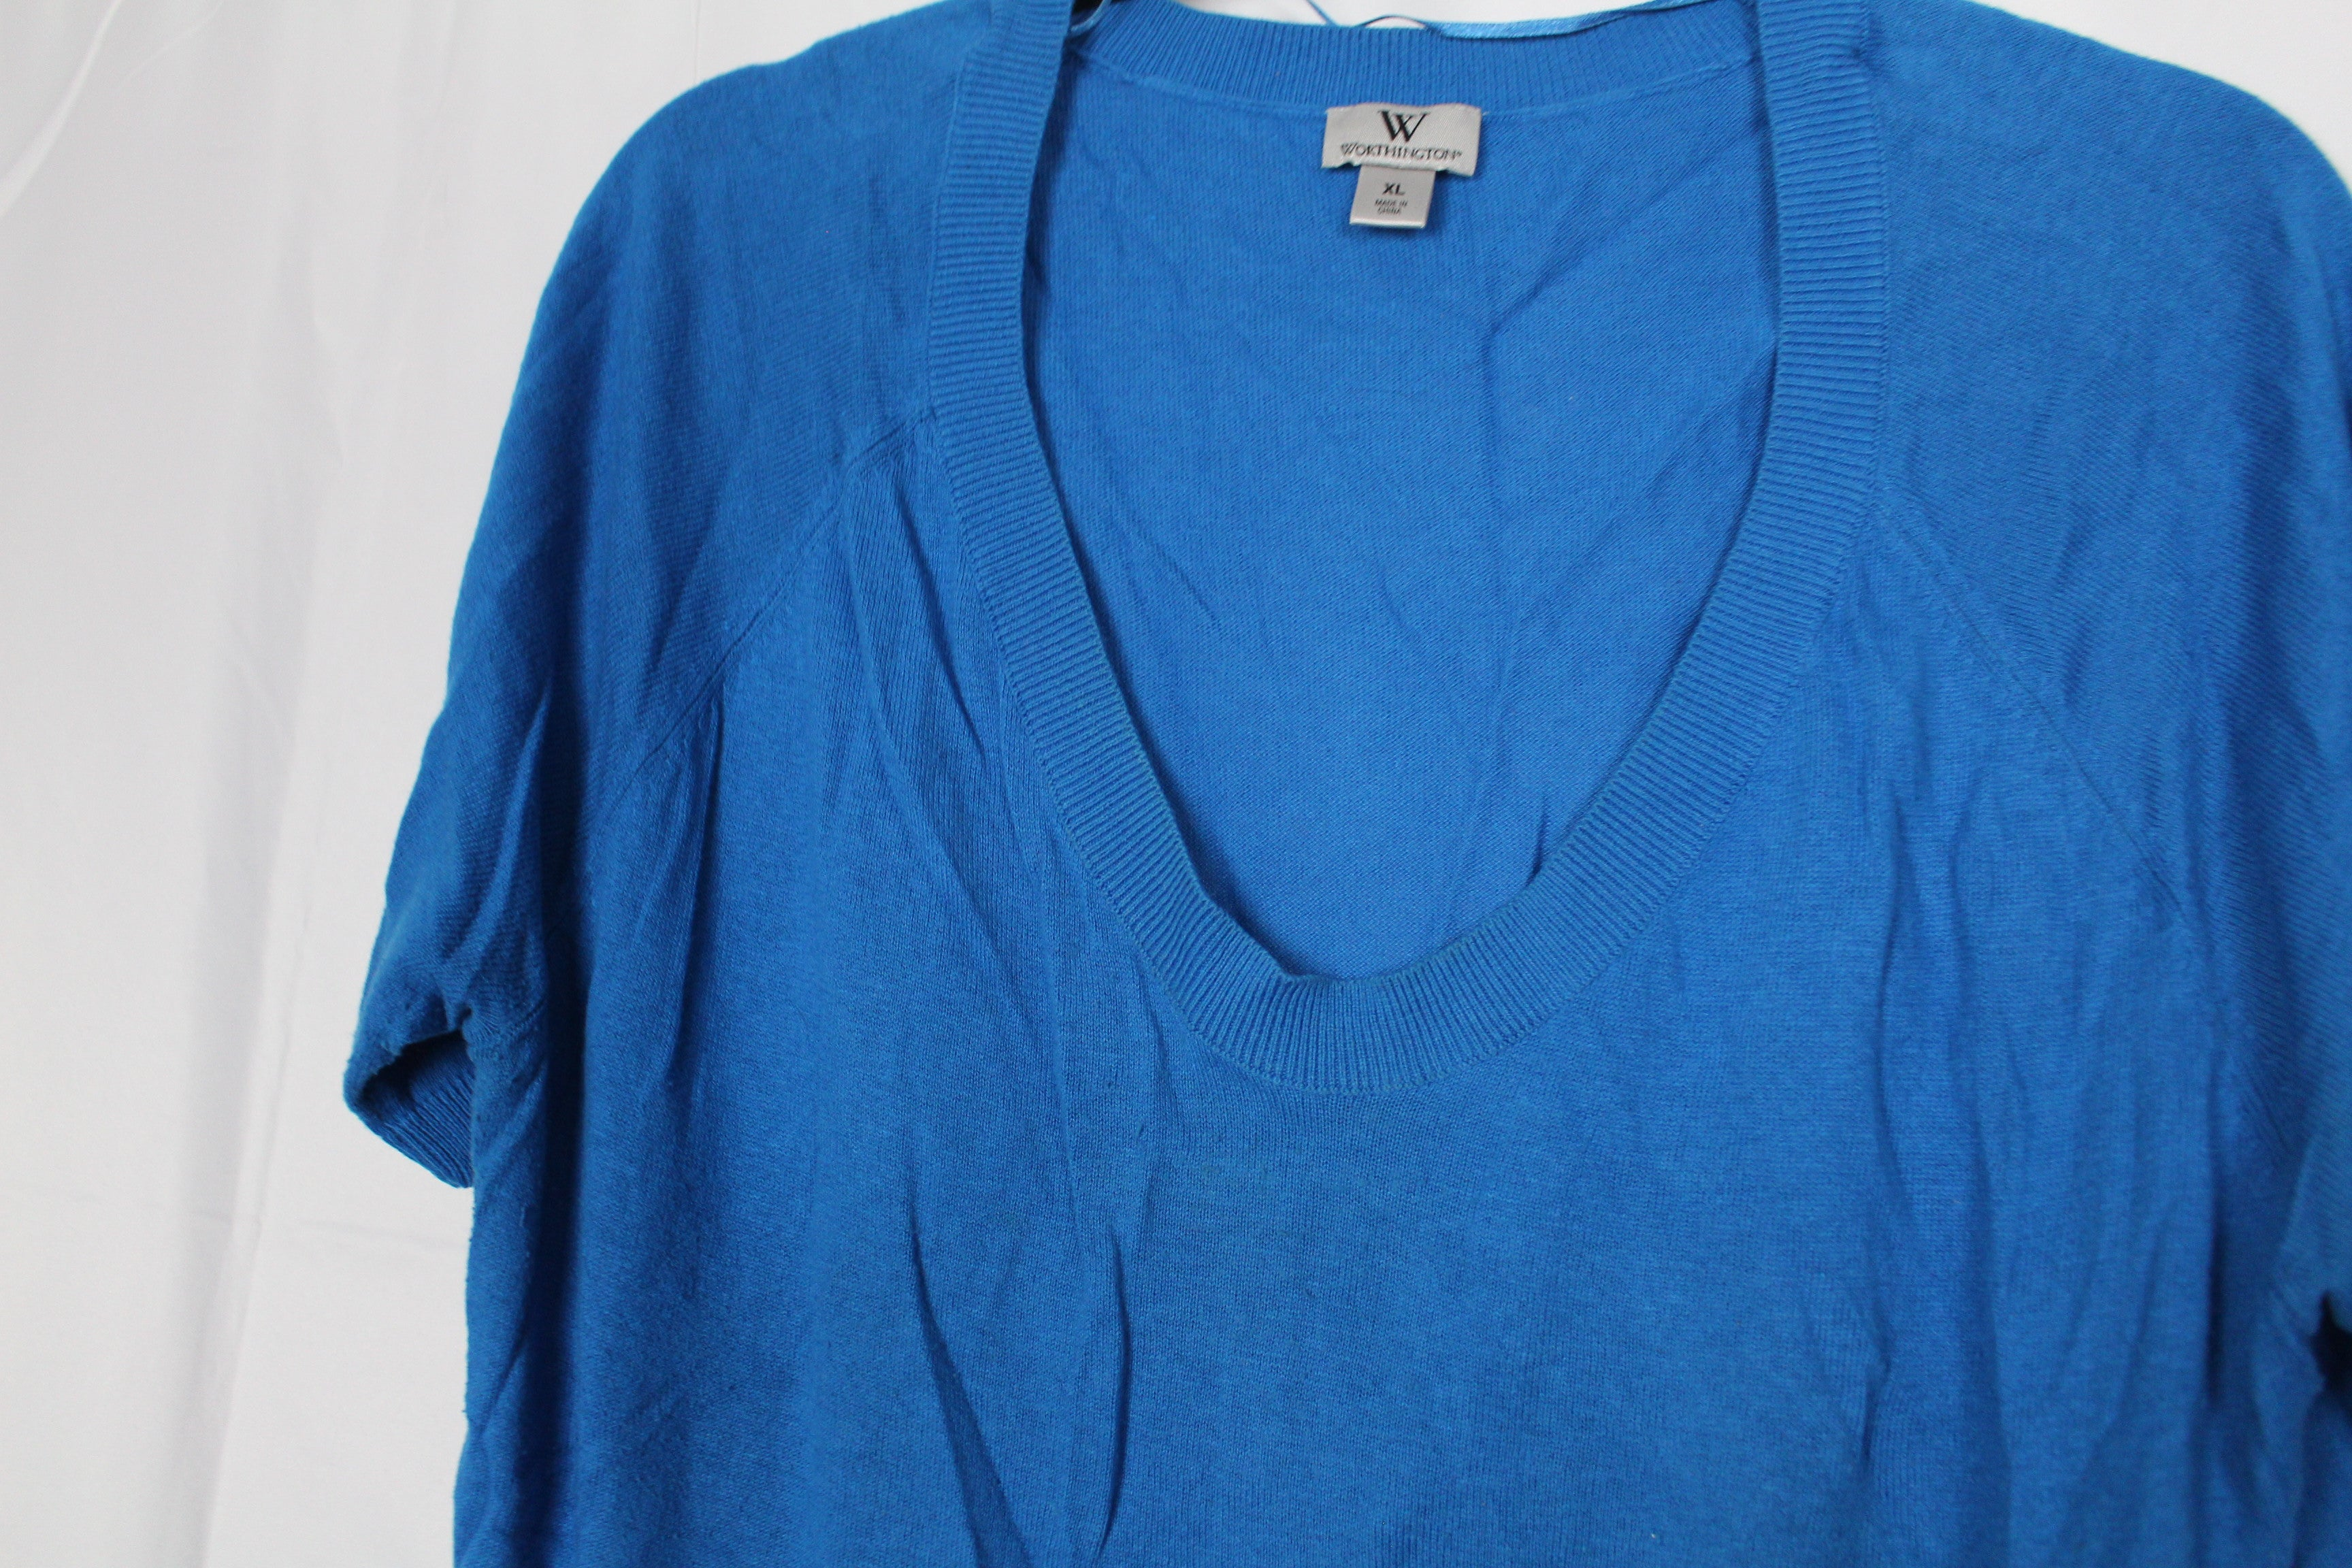 CLOSET SALE: V-Neck Short Sleeve Sweater- Size XL